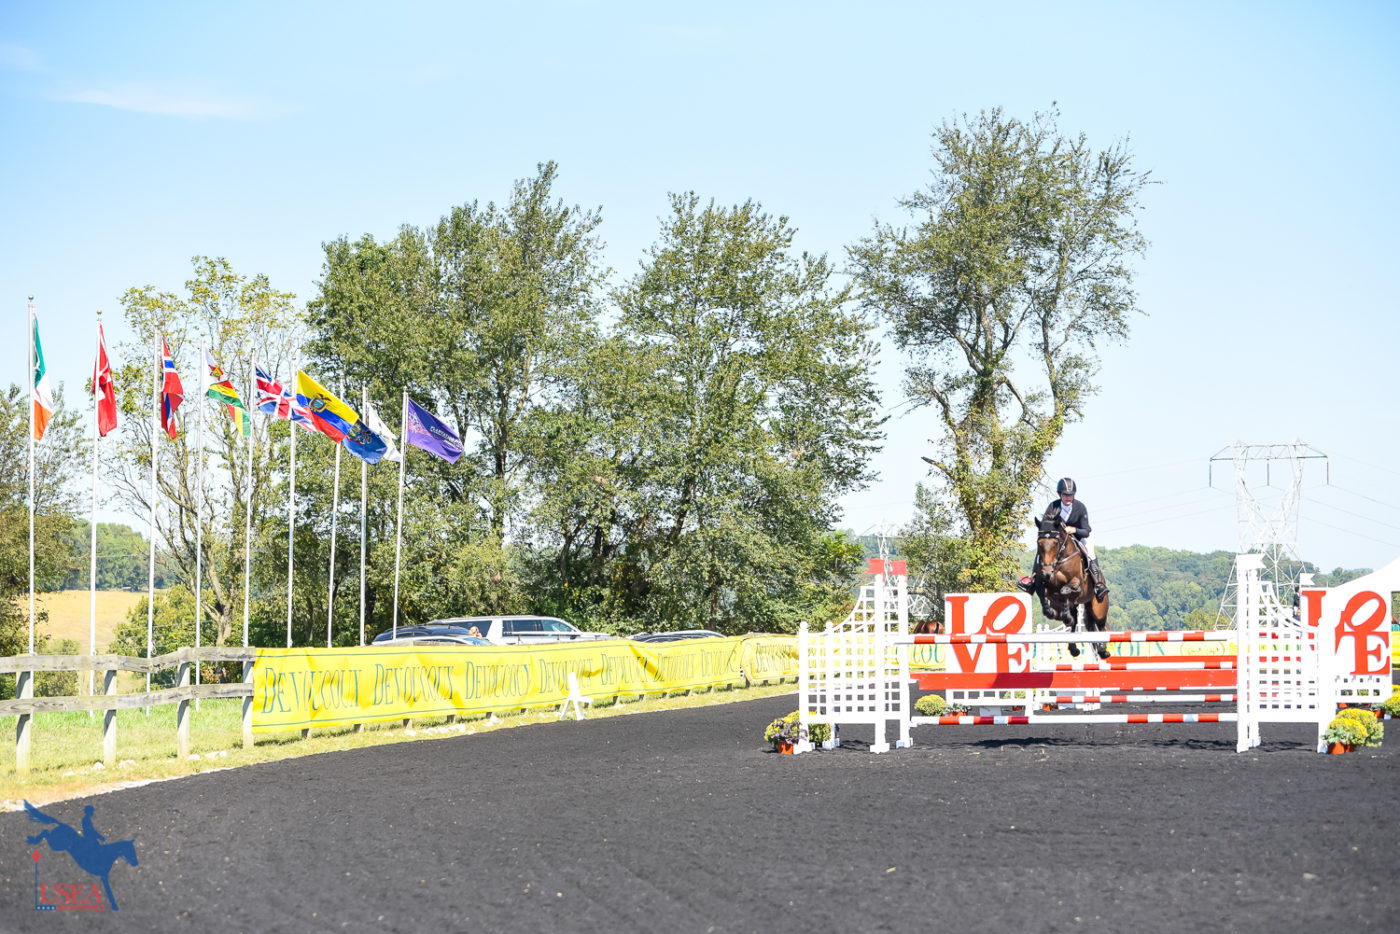 The iconic Plantation Field flags were flying high on Saturday. USEA/Jessica Duffy Photo.